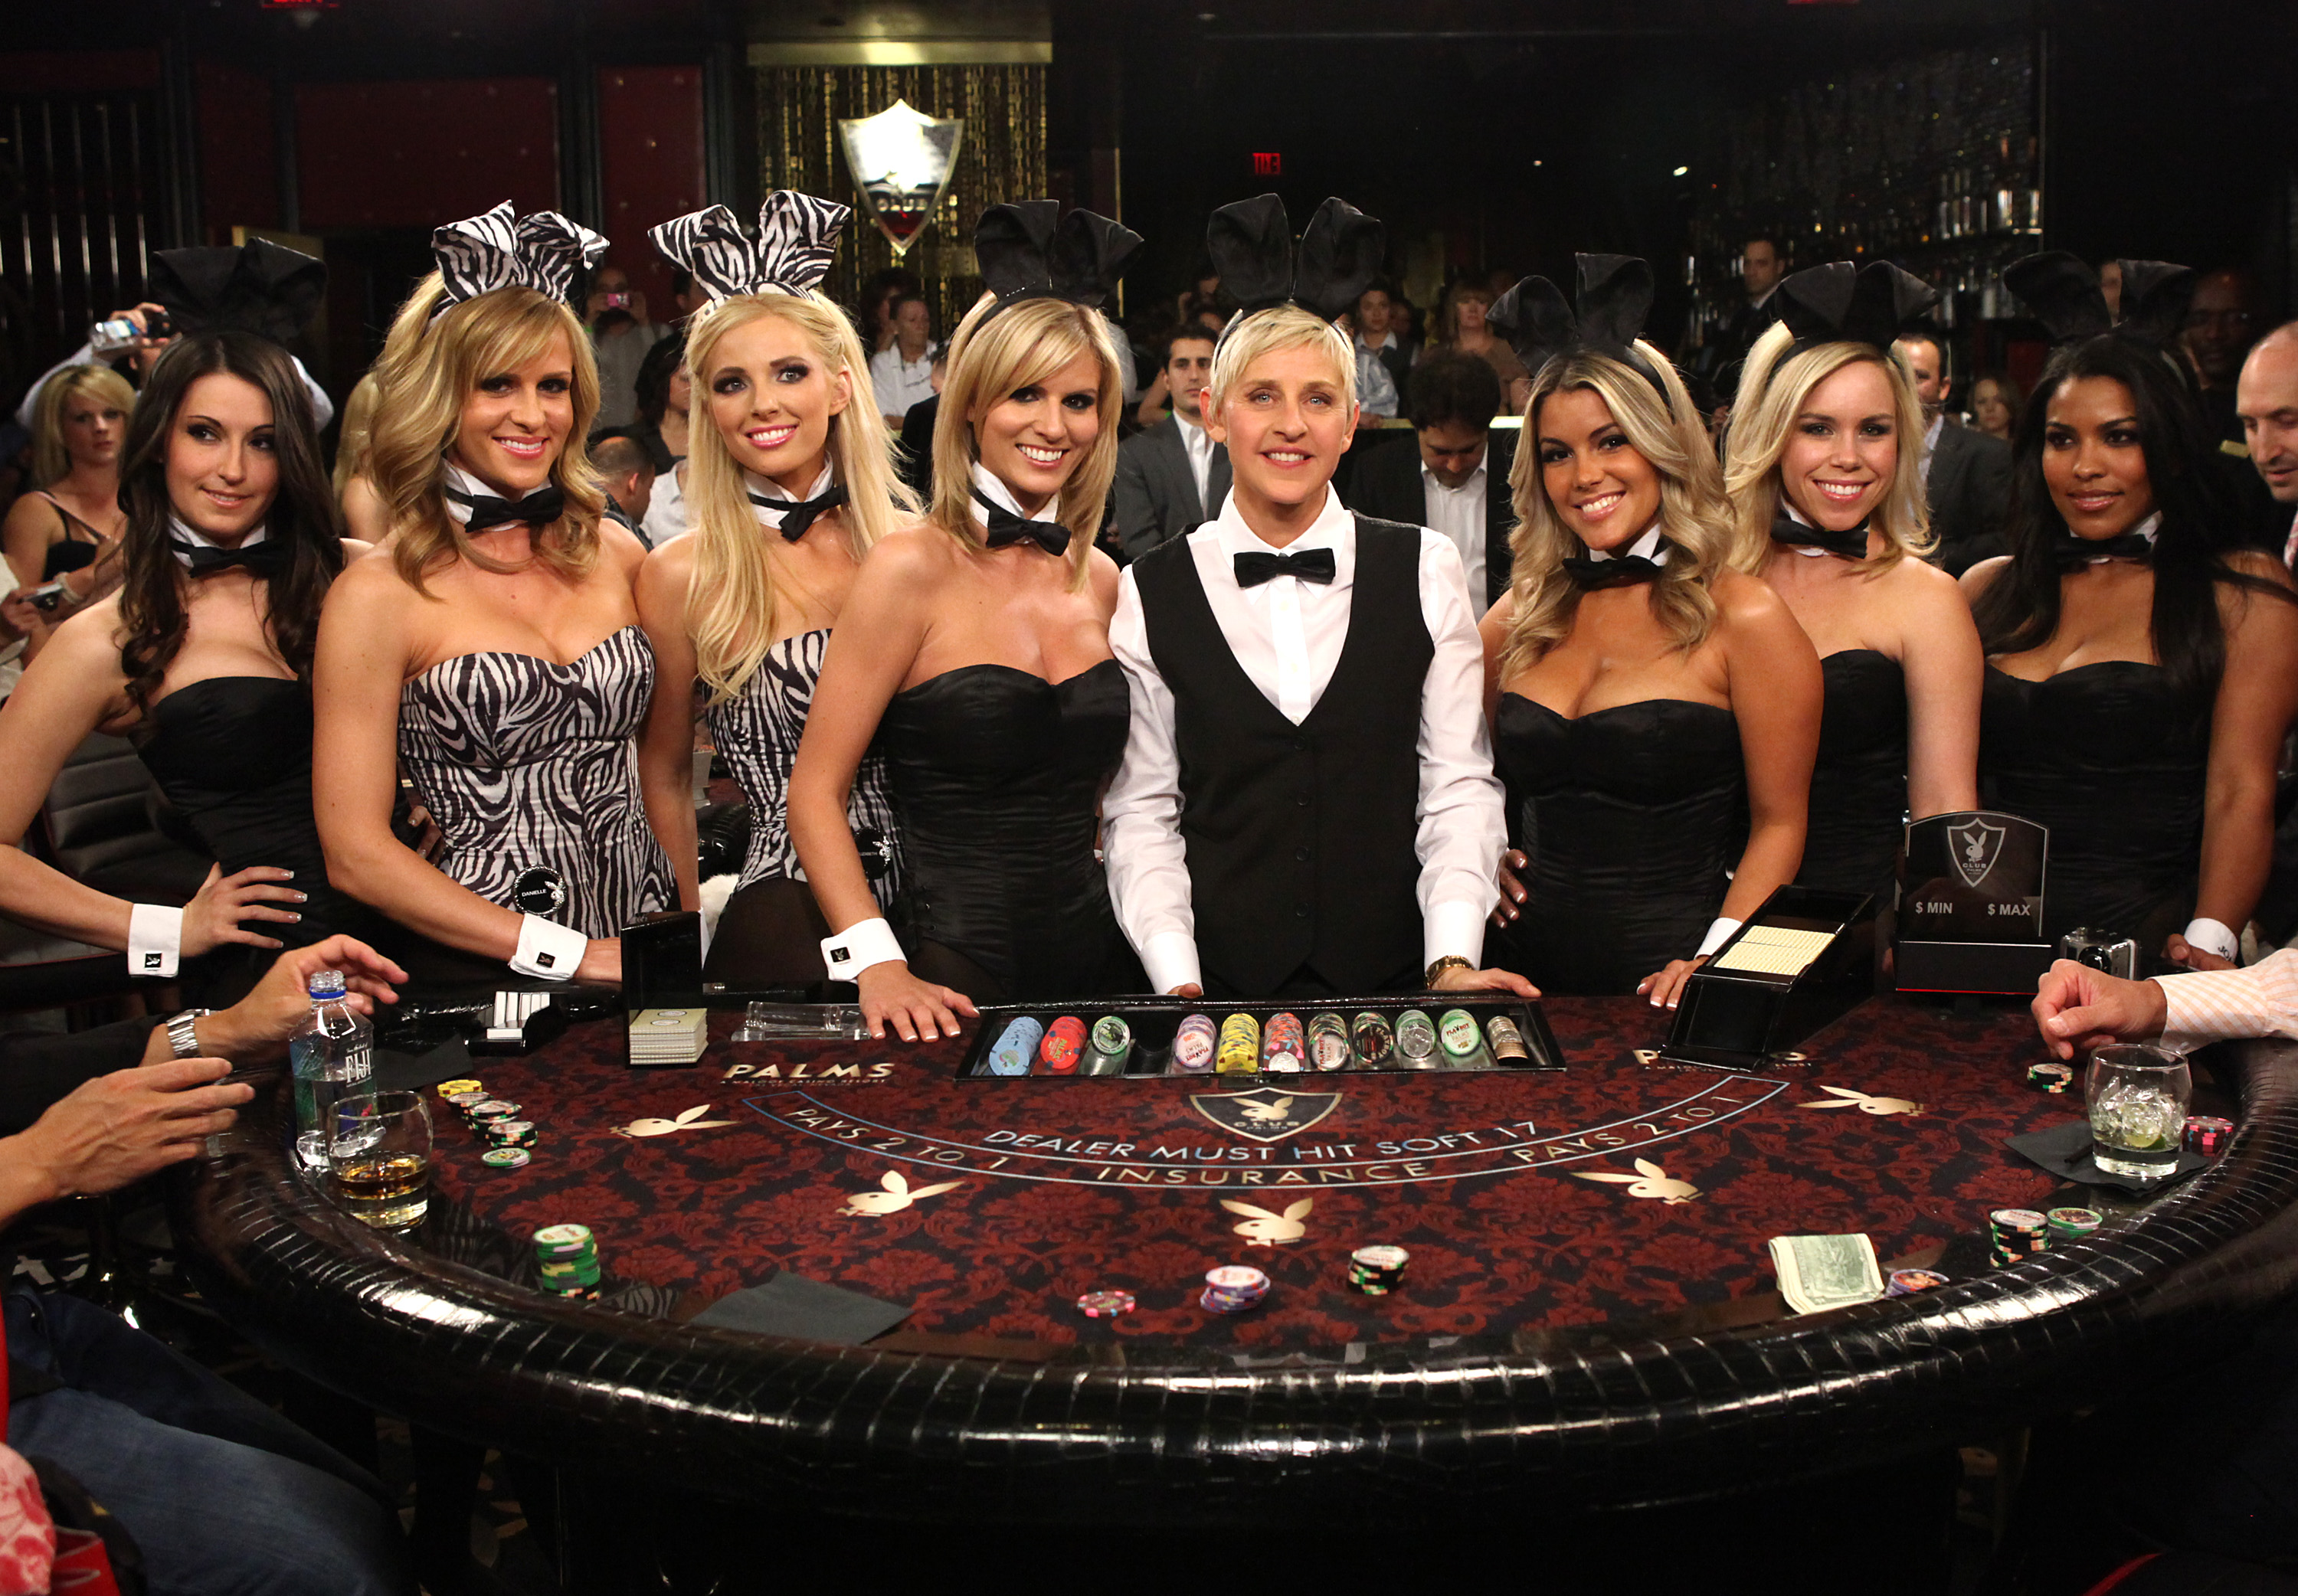 playboy casino | All the action from the casino floor: news, views and more